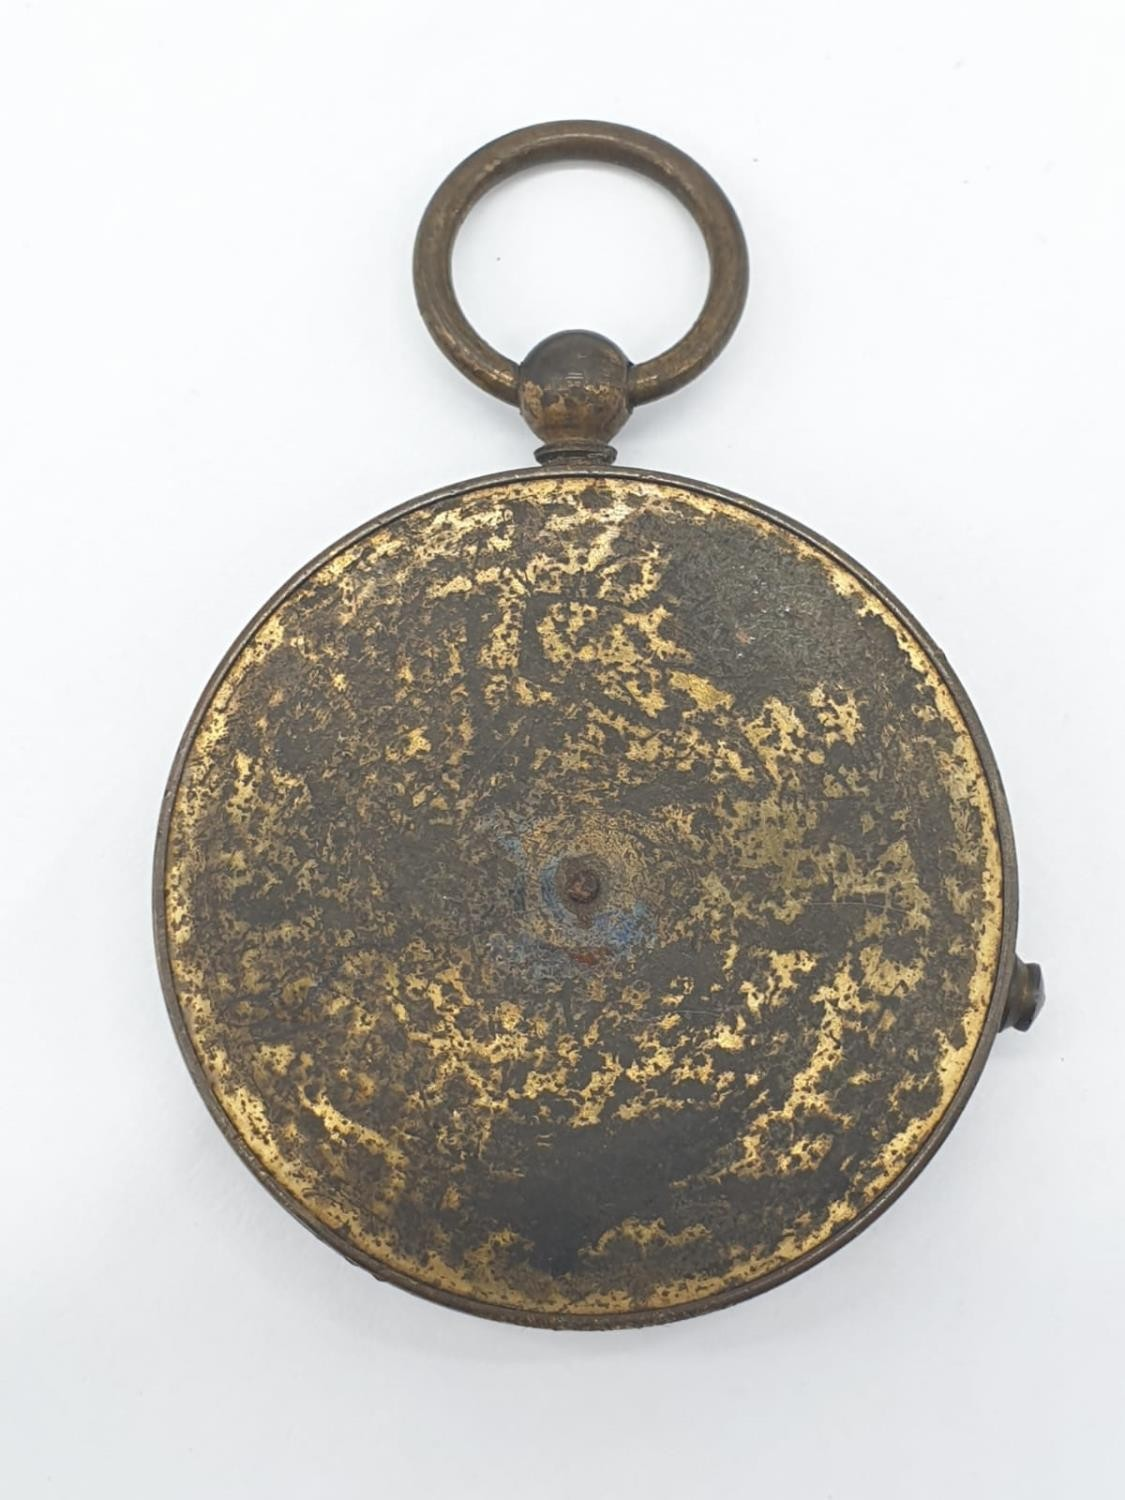 WW1 Imperial German Officers Compass. - Image 2 of 3